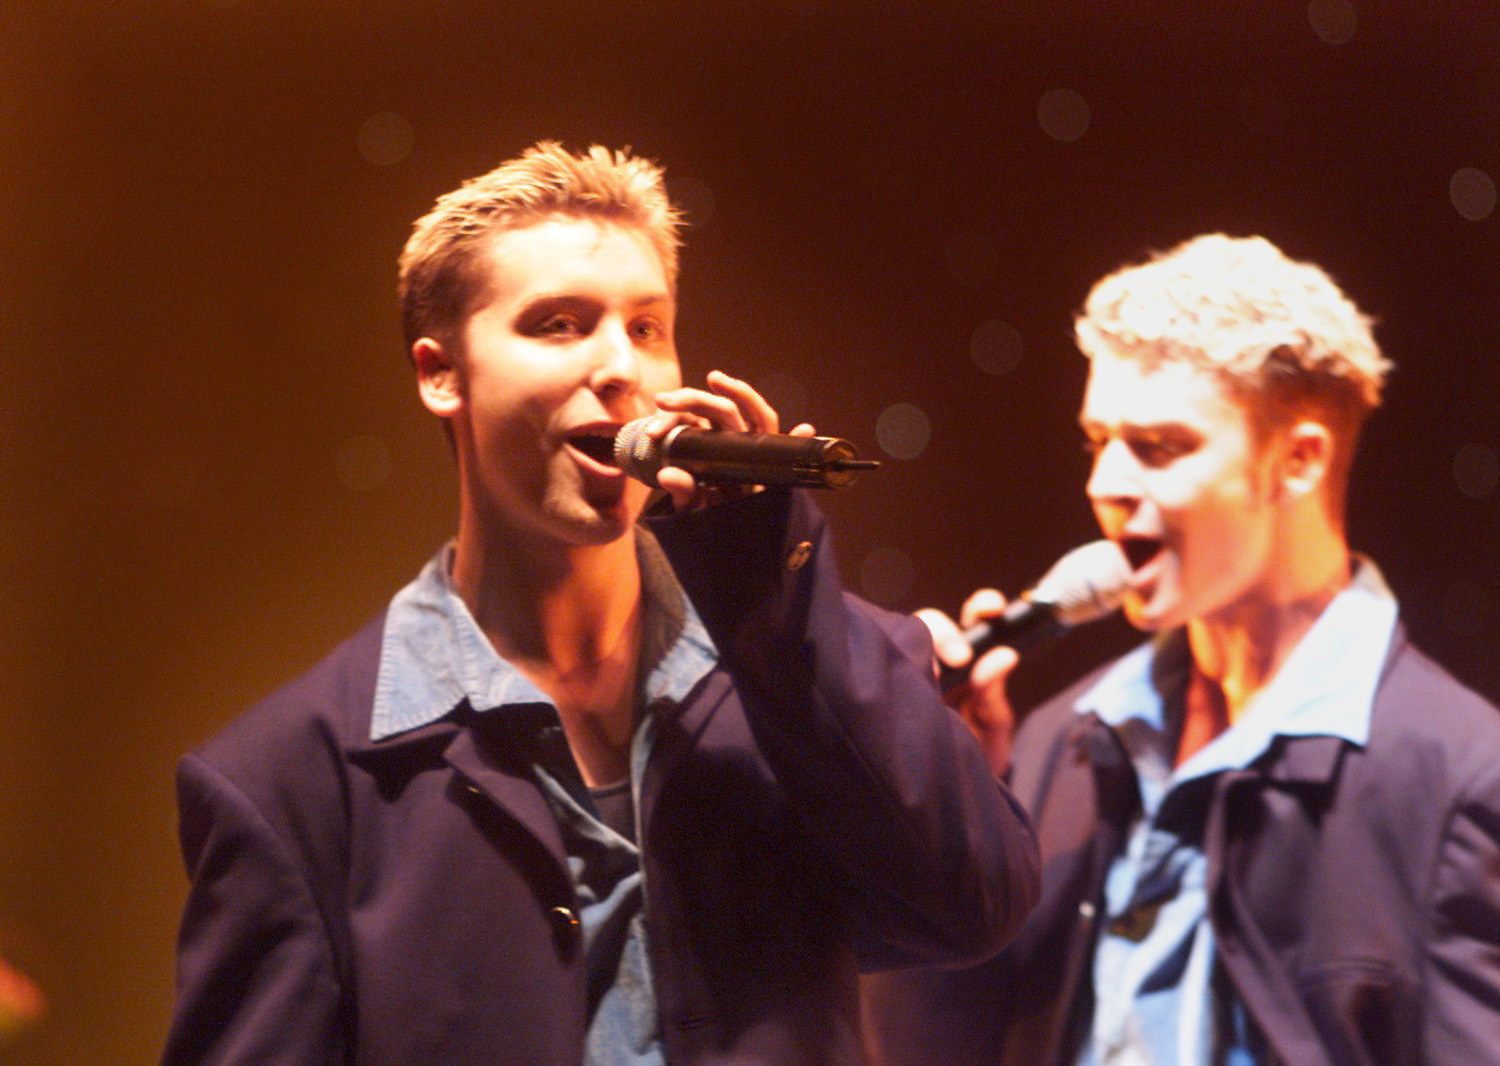 Lance Bass and Justin Timberlake singing onstage together